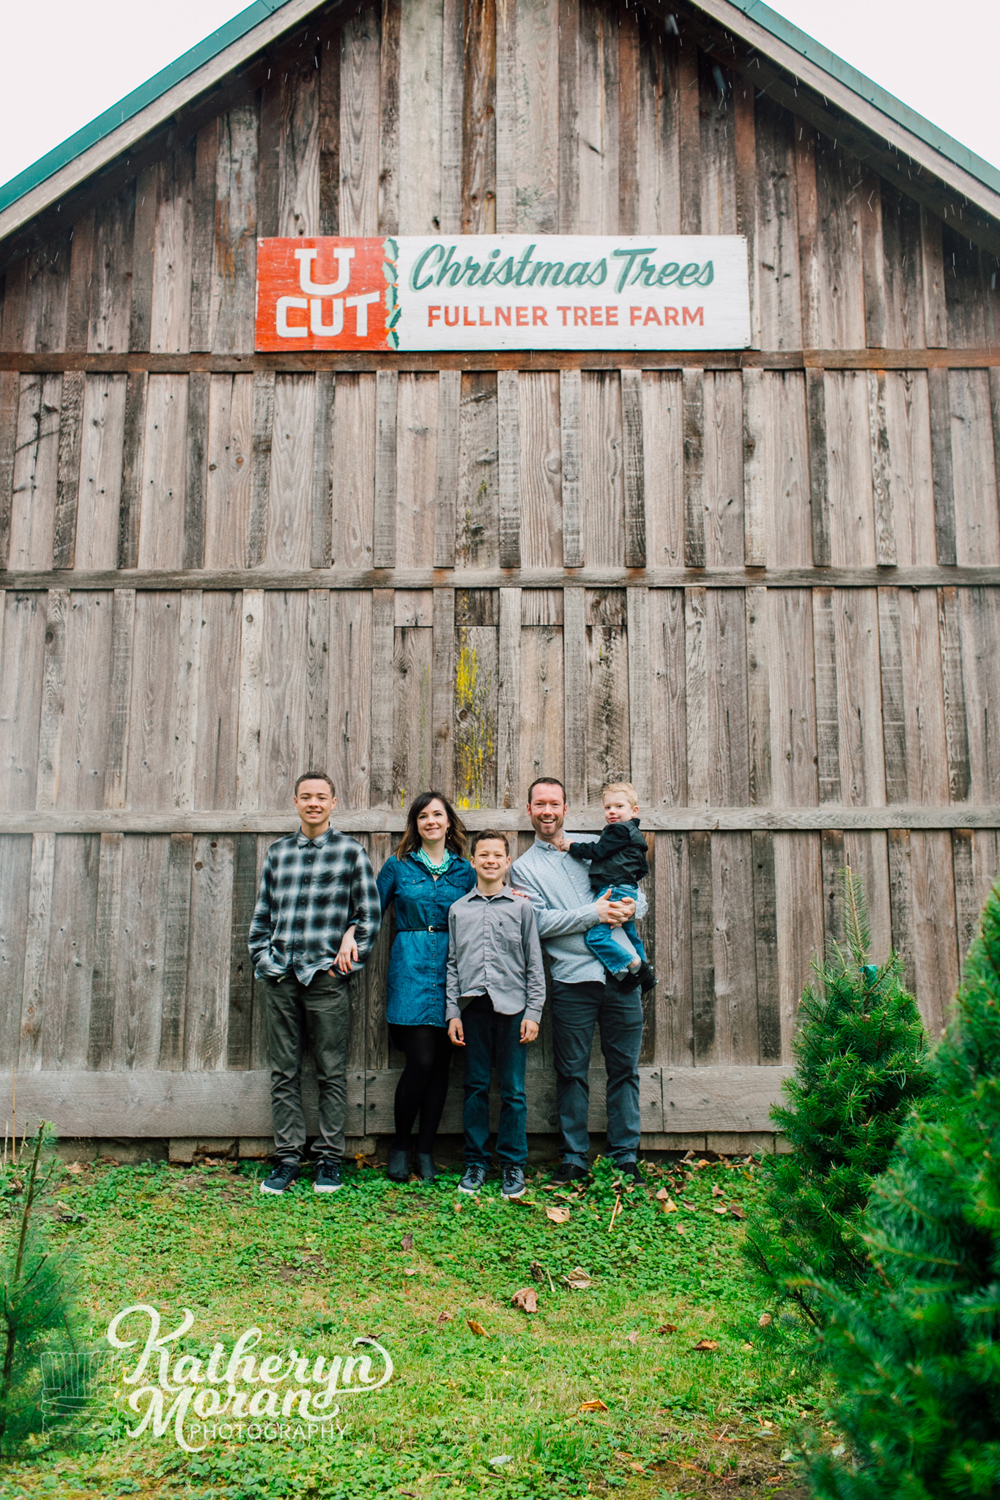 016-bellingham-holiday-mini-sessions-fullner-tree-farm-2017.jpg